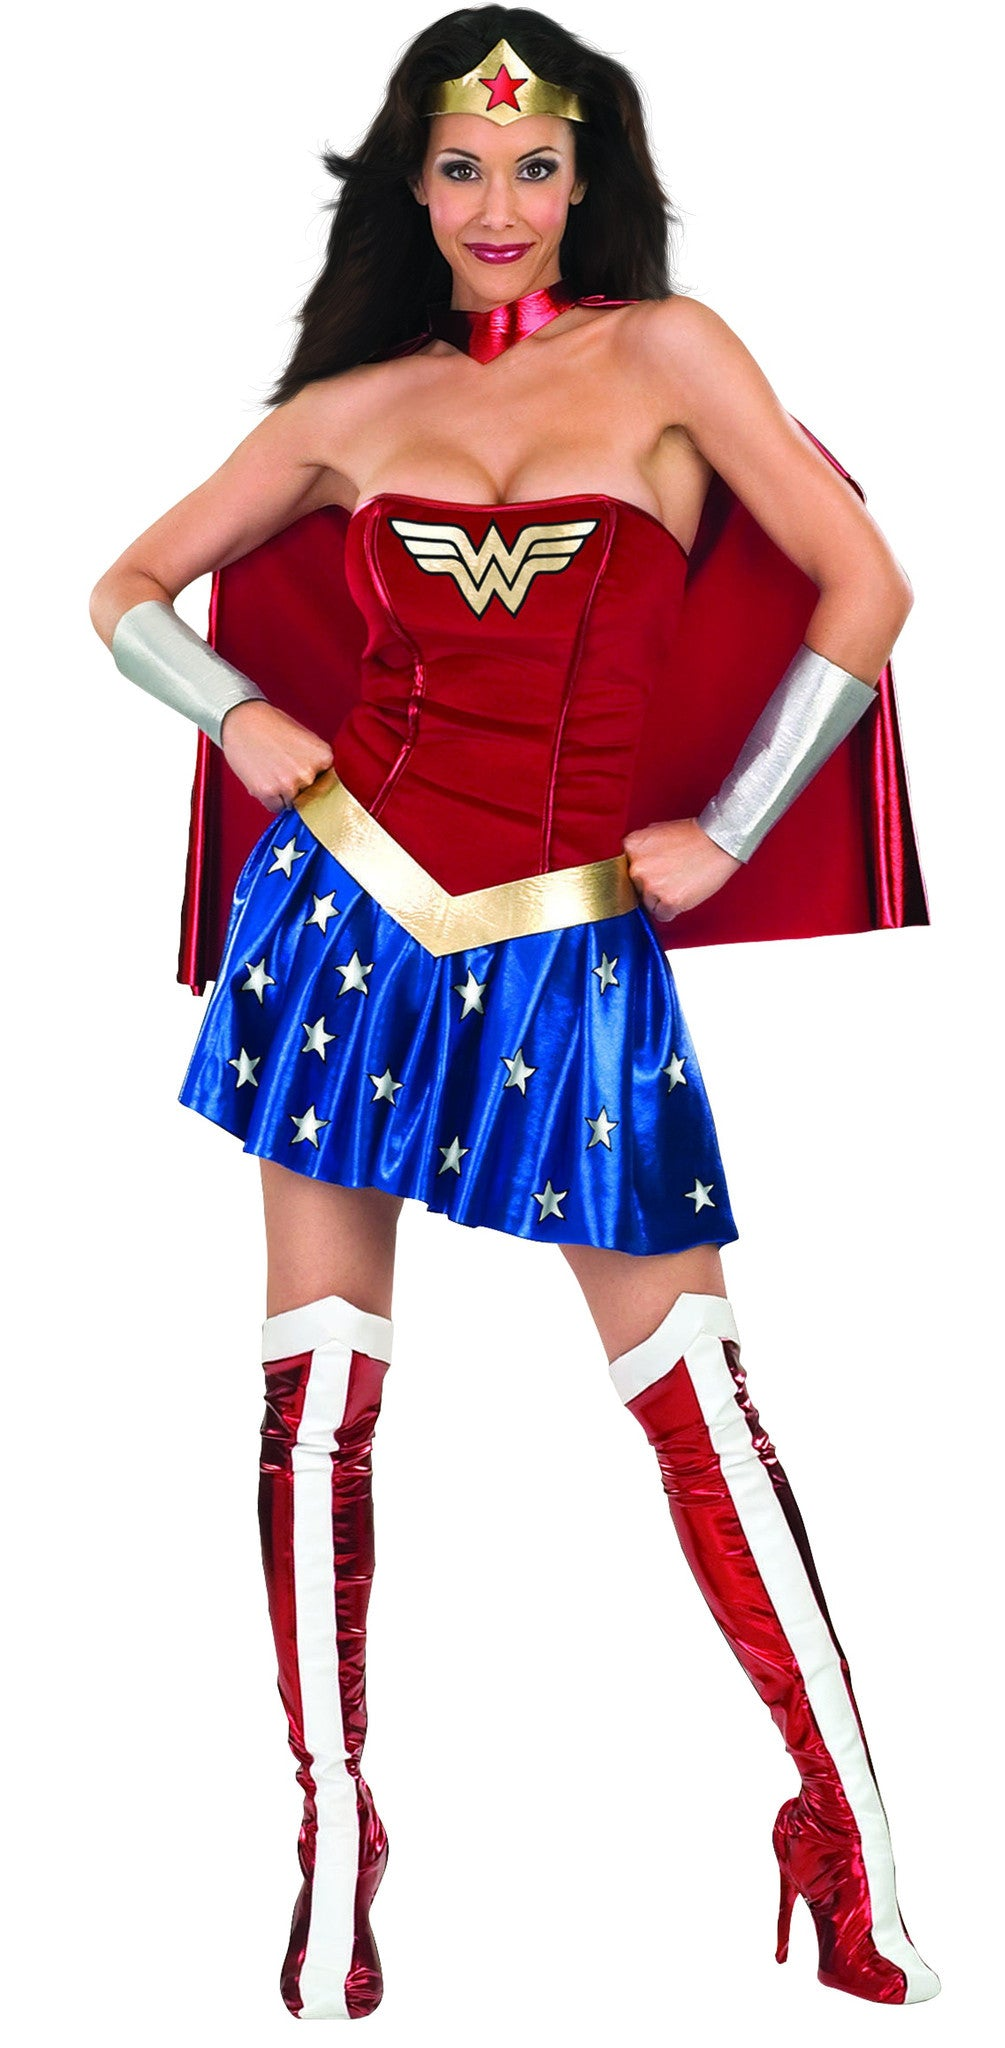 WONDER WOMAN CLASSIC SECRET WISHES COSTUME, ADULT